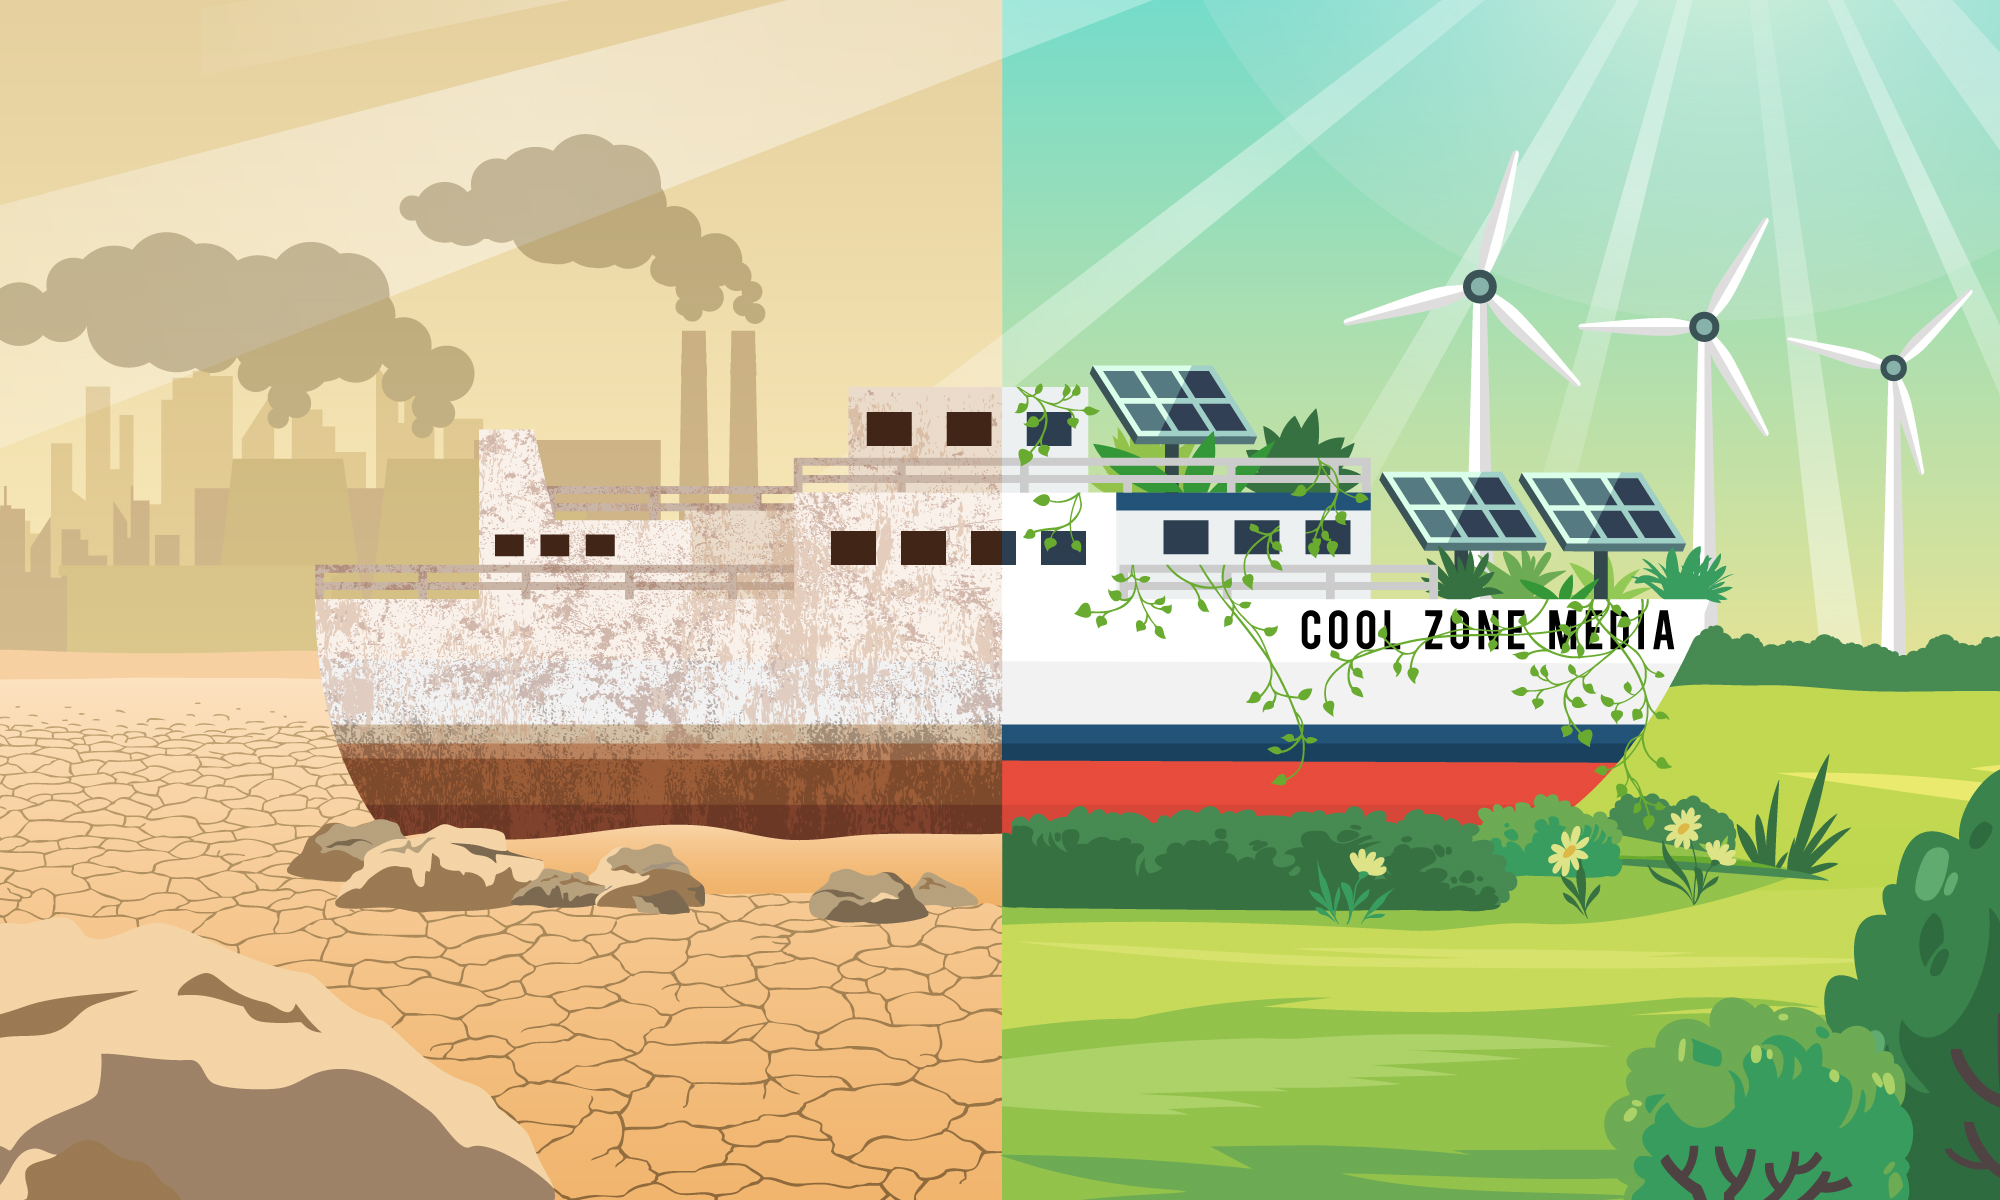 split image of a boat named cool zone media. On the left, in sepia tone is a rusted boat on a dry shore with refinery towers billowing smoke in the background. On the right, in bright colors is the other half of the boat: covered in ivy and solar panels, on a lush shore, with bushes in the foreground and wind turbines in the background.